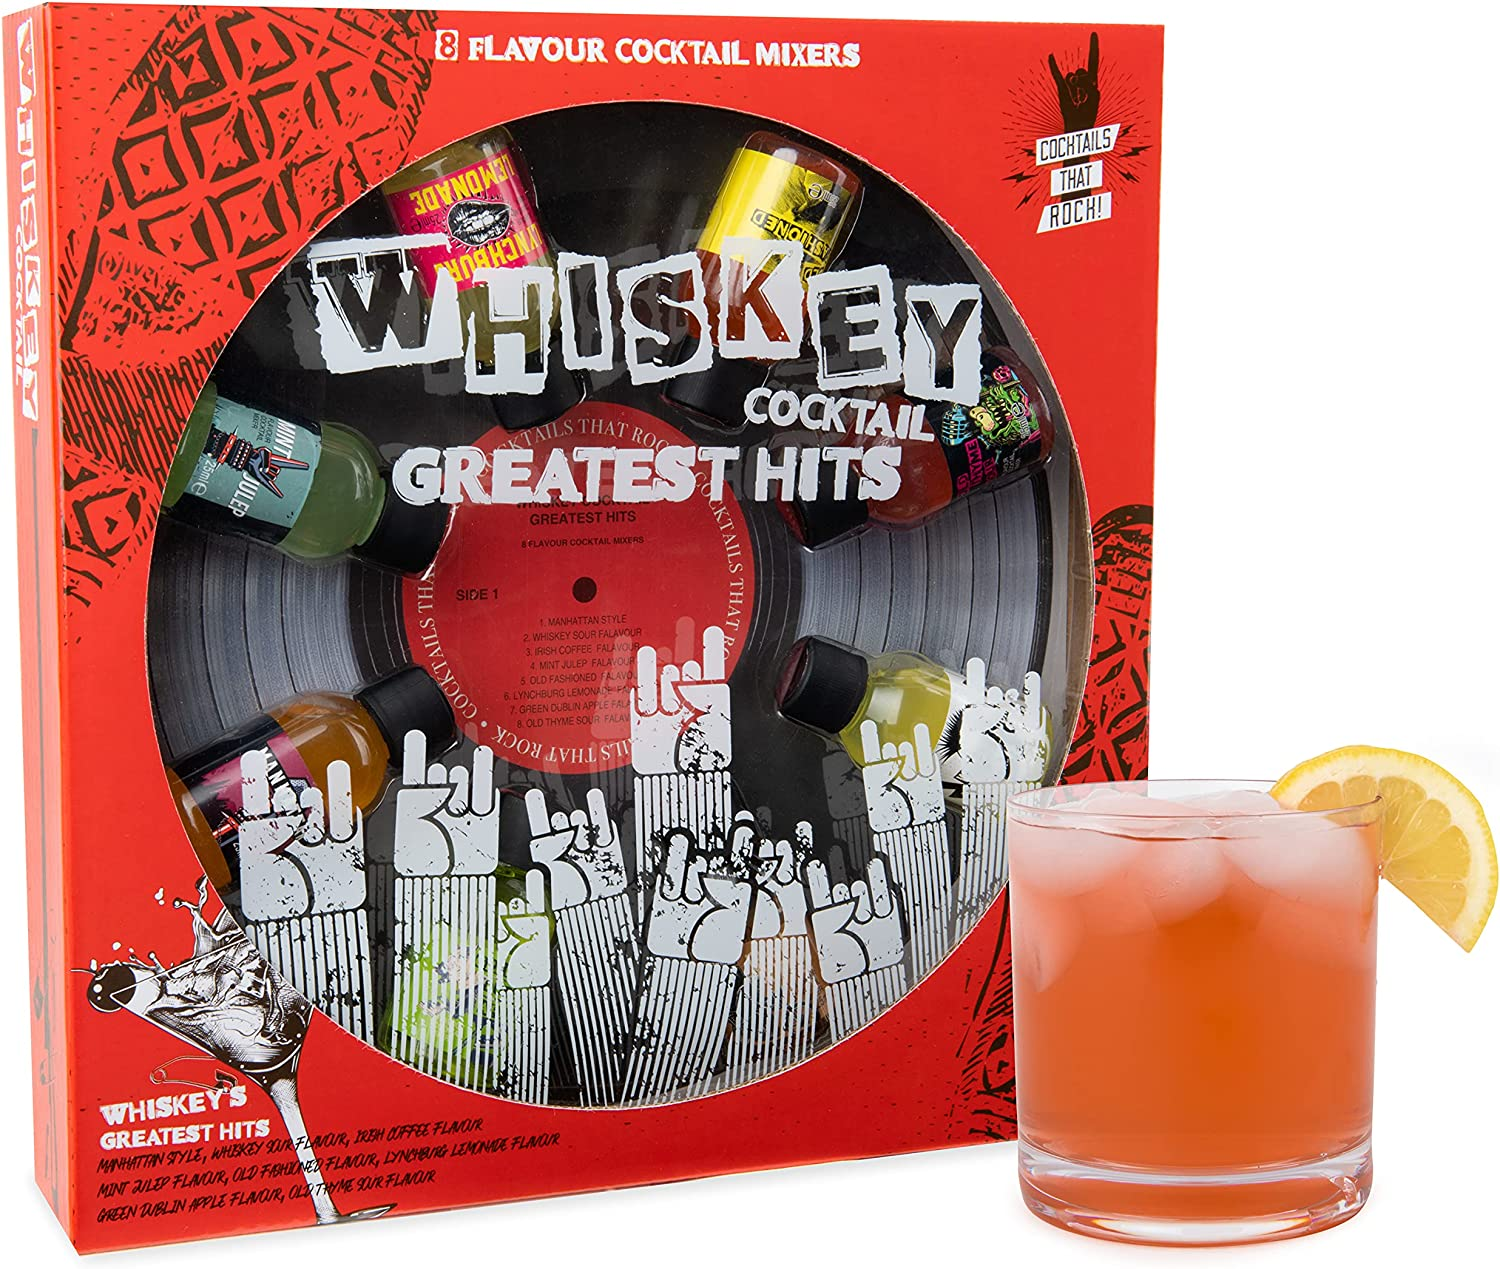 Modern Gourmet Foods, Greatest Hits Cocktail Mixers for Whisky Gift Set, Los Sabores Incluyen Manhattan Style, Whisky Sour, Old Fashioned y Más, Pack 8 (No Contiene Alcohol)